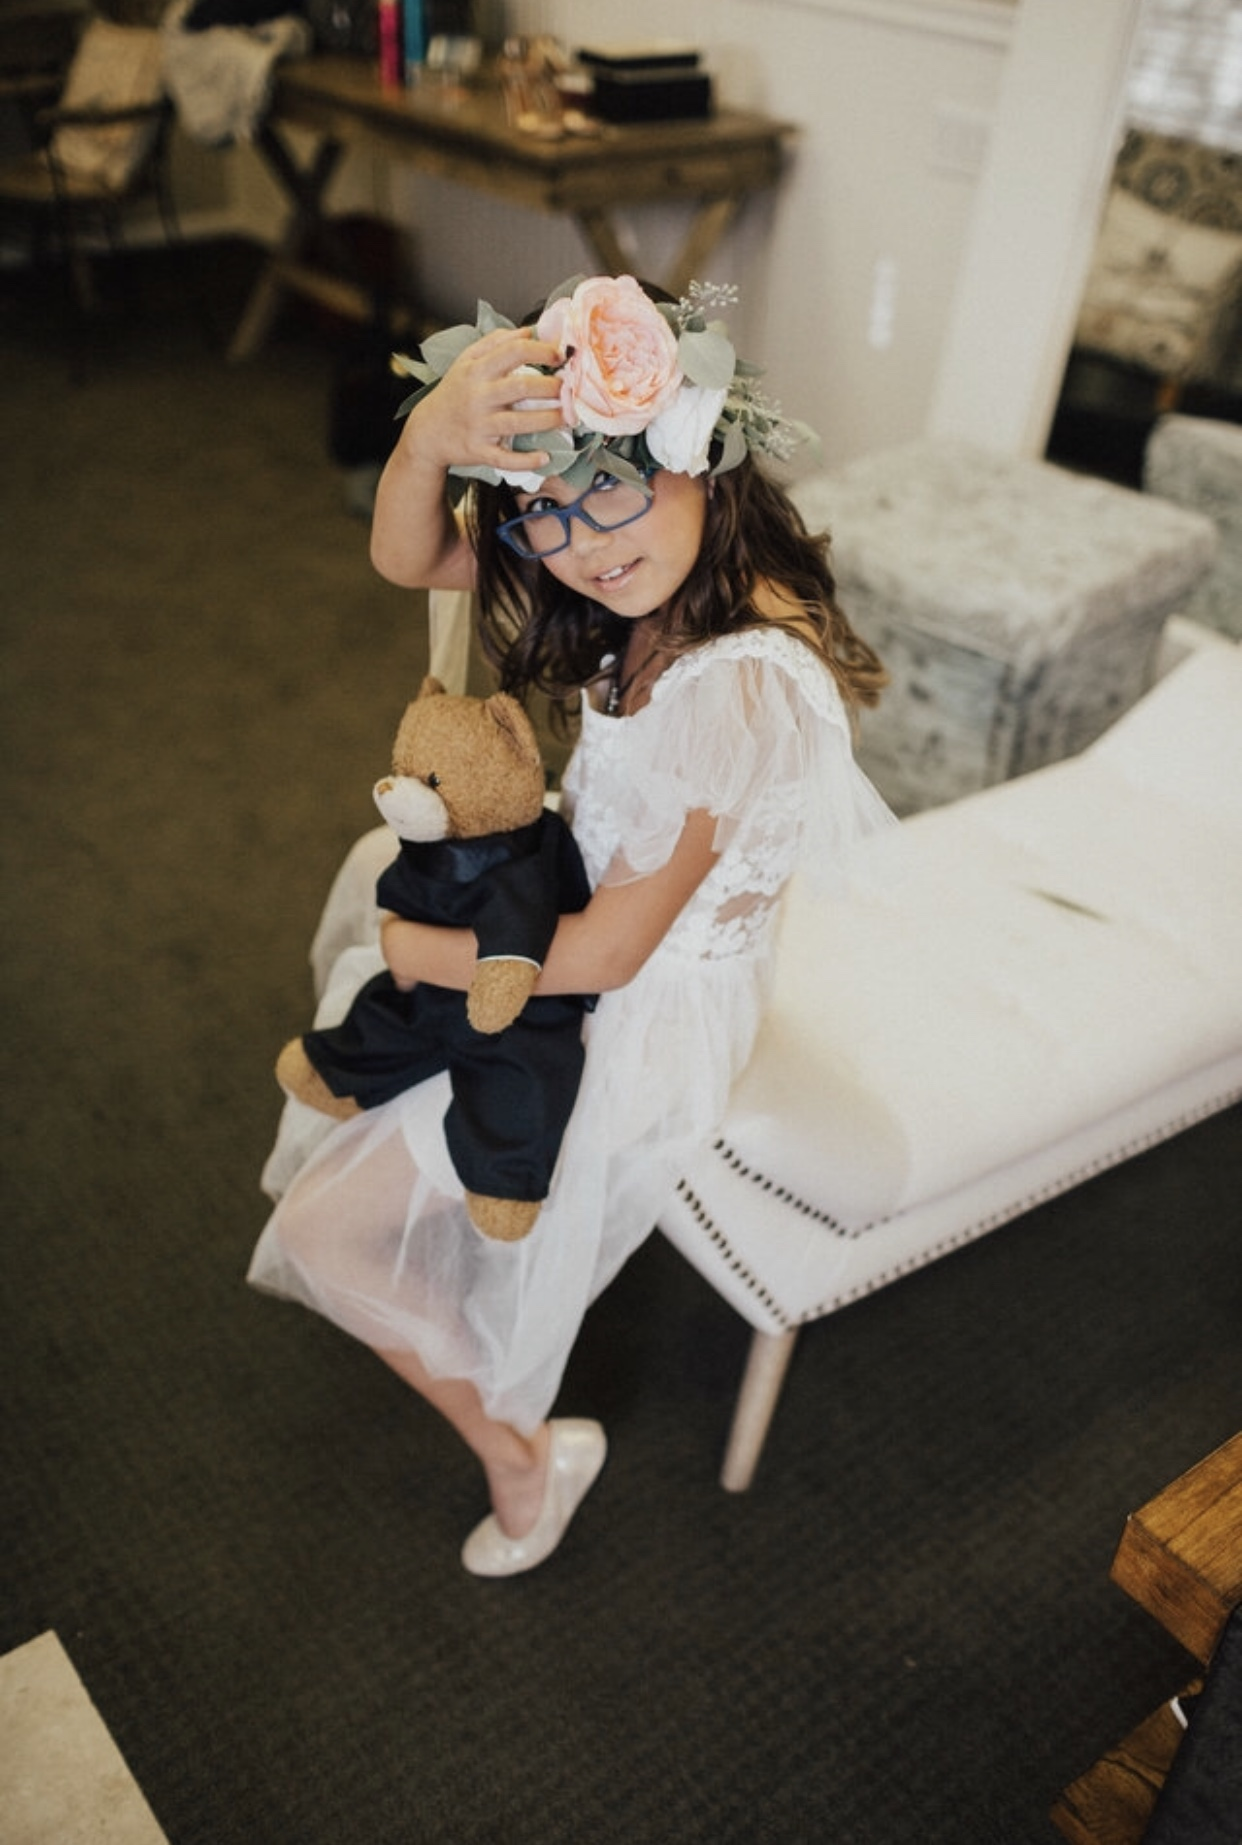 Stephanie wove those flowers in for Sophia's head crown...and Sophia made sure Bear came prepared with his own Suit.